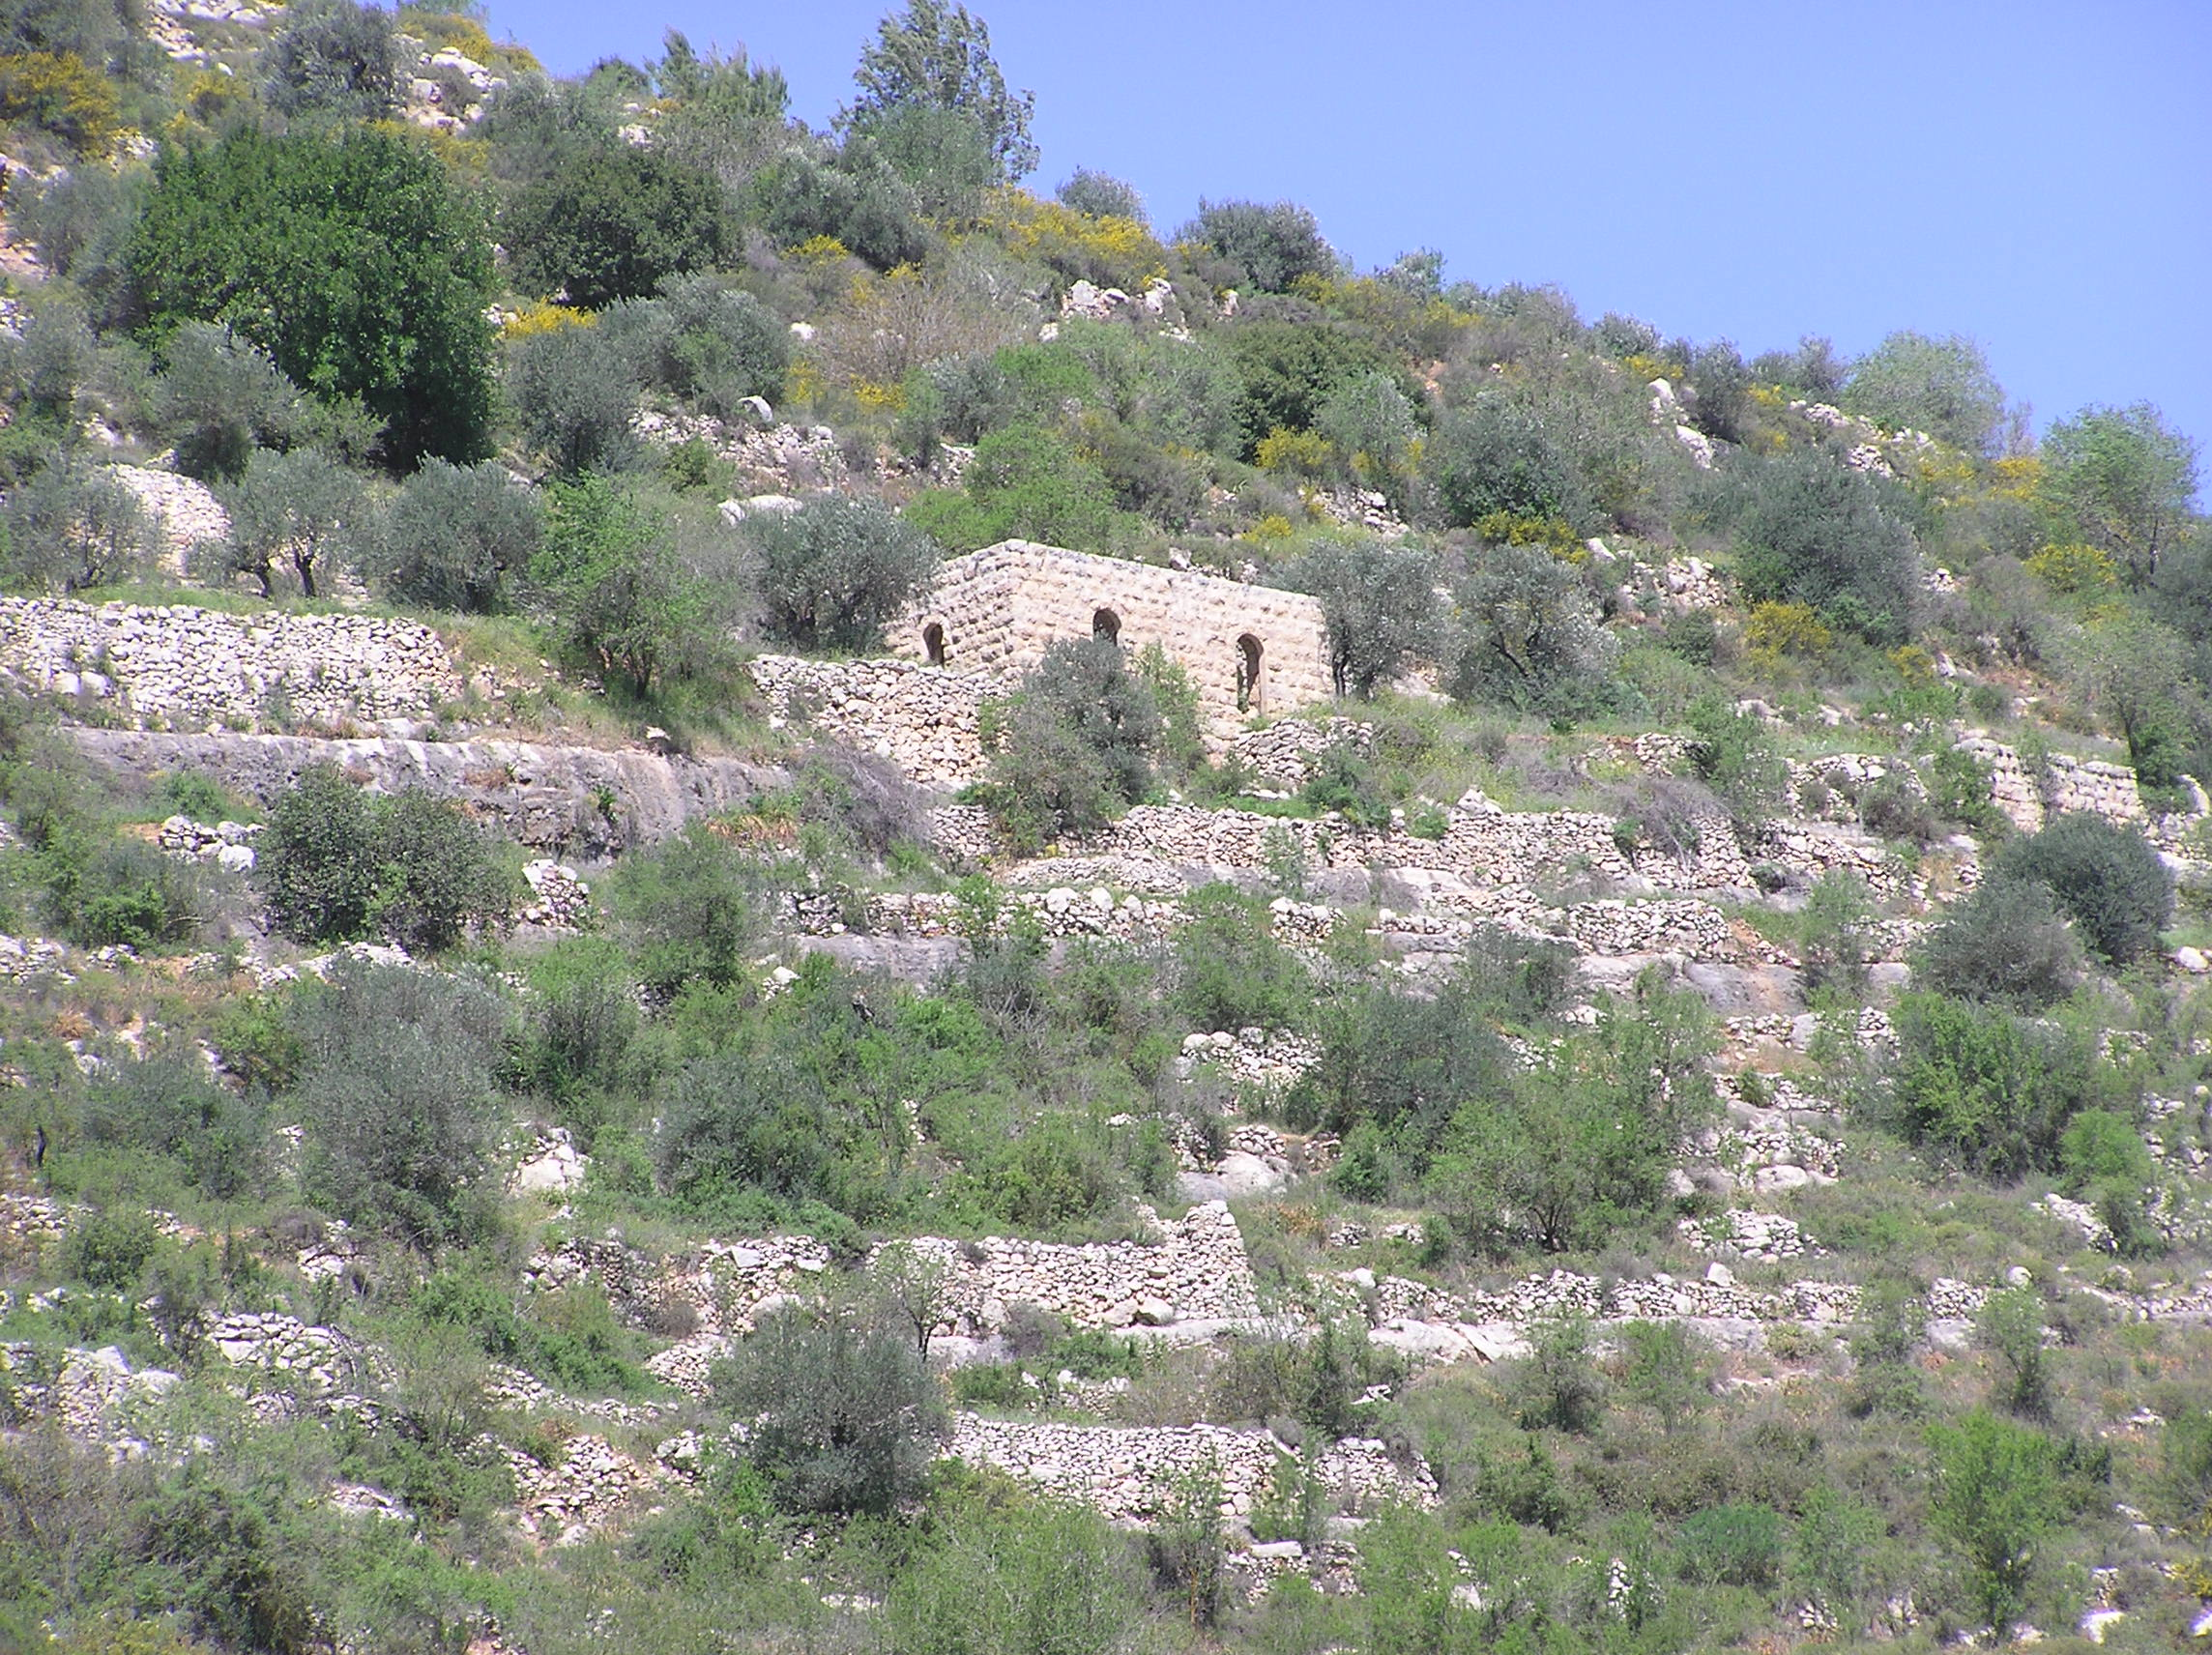 Sataf - صطاف : One of Sataff's Houses is still standing on its beautiful stone wall  terraces.